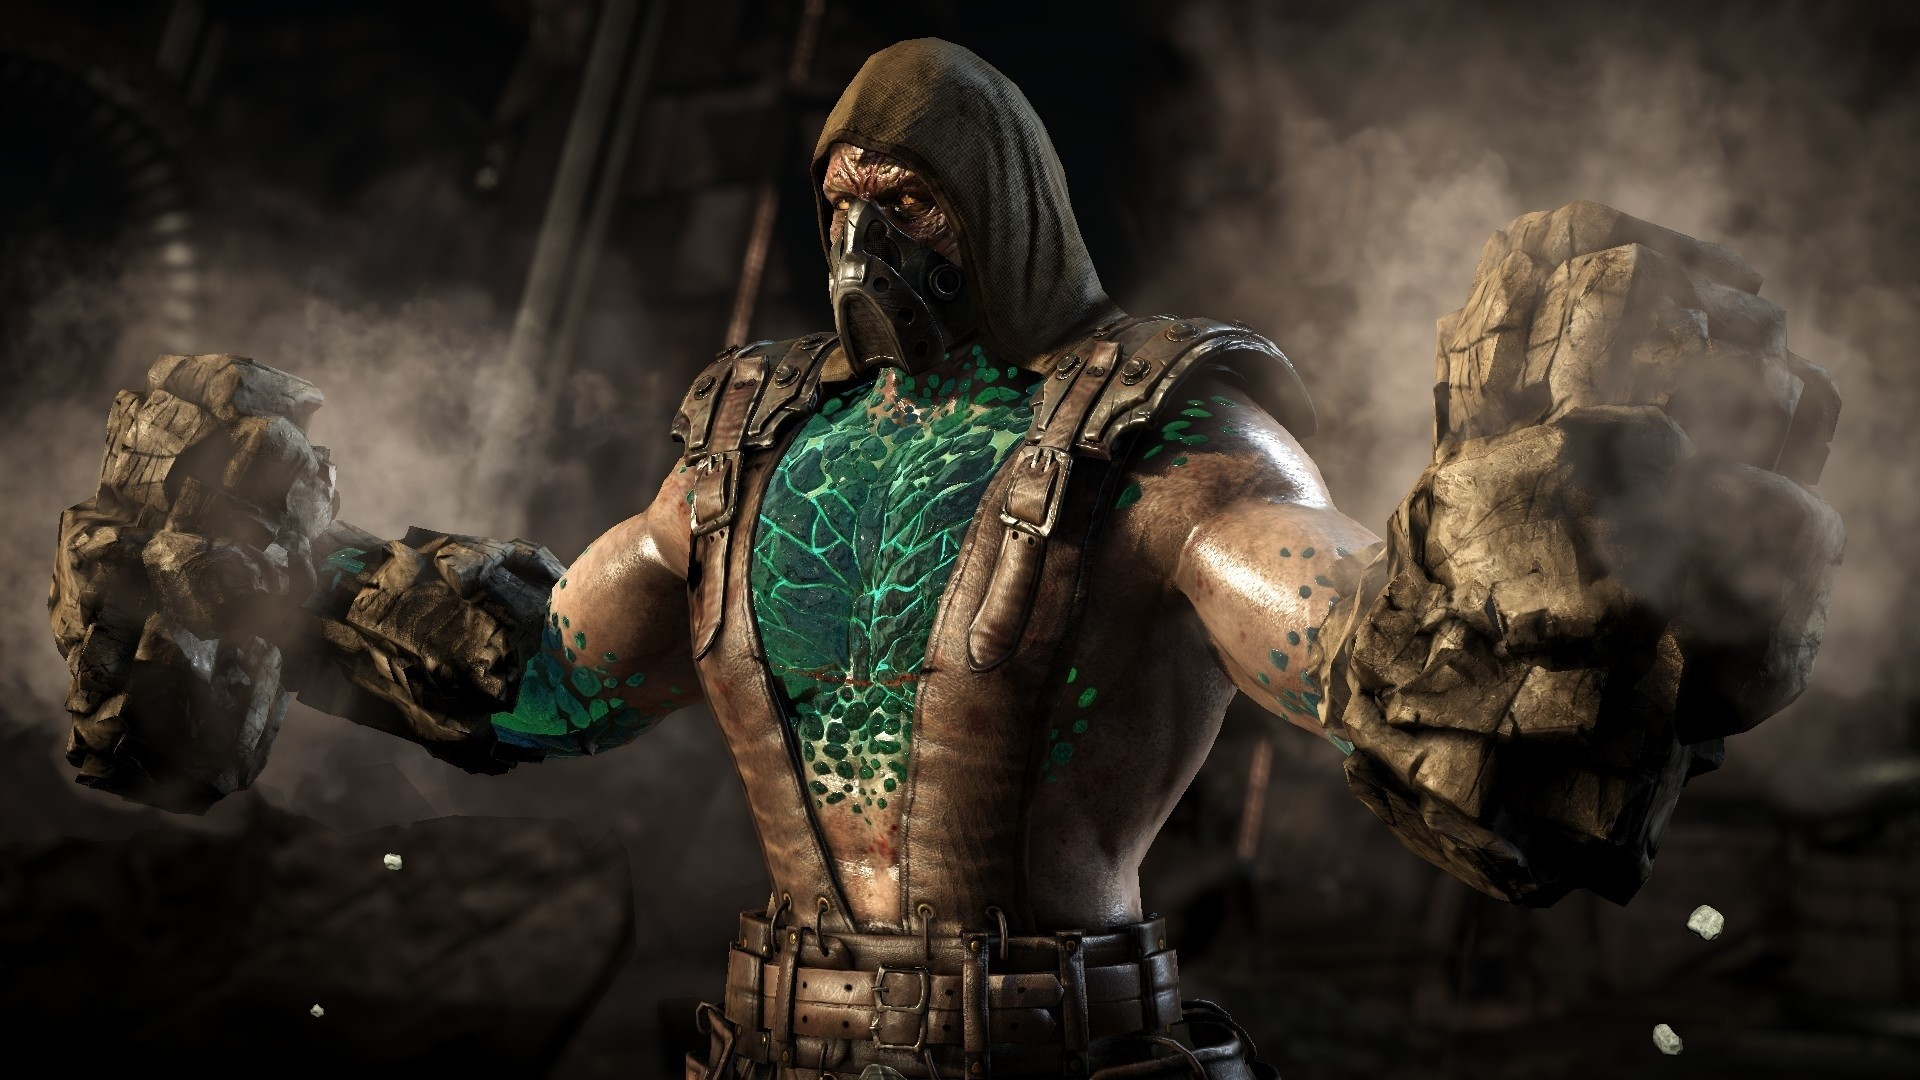 [1920×1080] Tremor From Mortal Kombat X Need #iPhone #6S #Plus #Wallpaper/  #Background for #IPhone6SPlus? Follow iPhone 6S Plus 3Wallpapers/ #Backg…